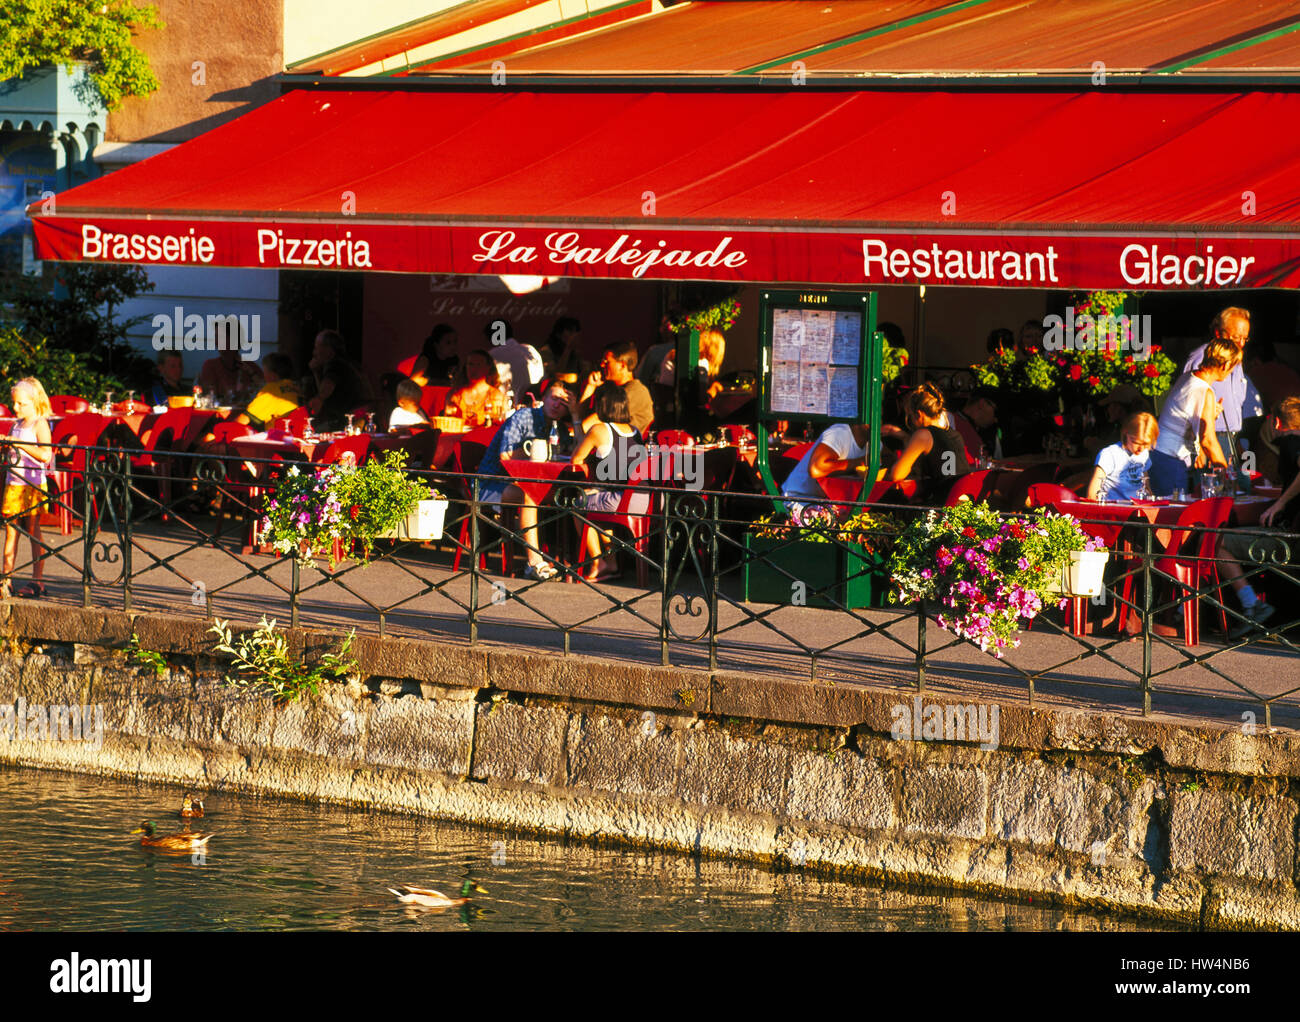 Pavement cafe, Annecy, Haute Savoie, Rhone Alps, France - Stock Image